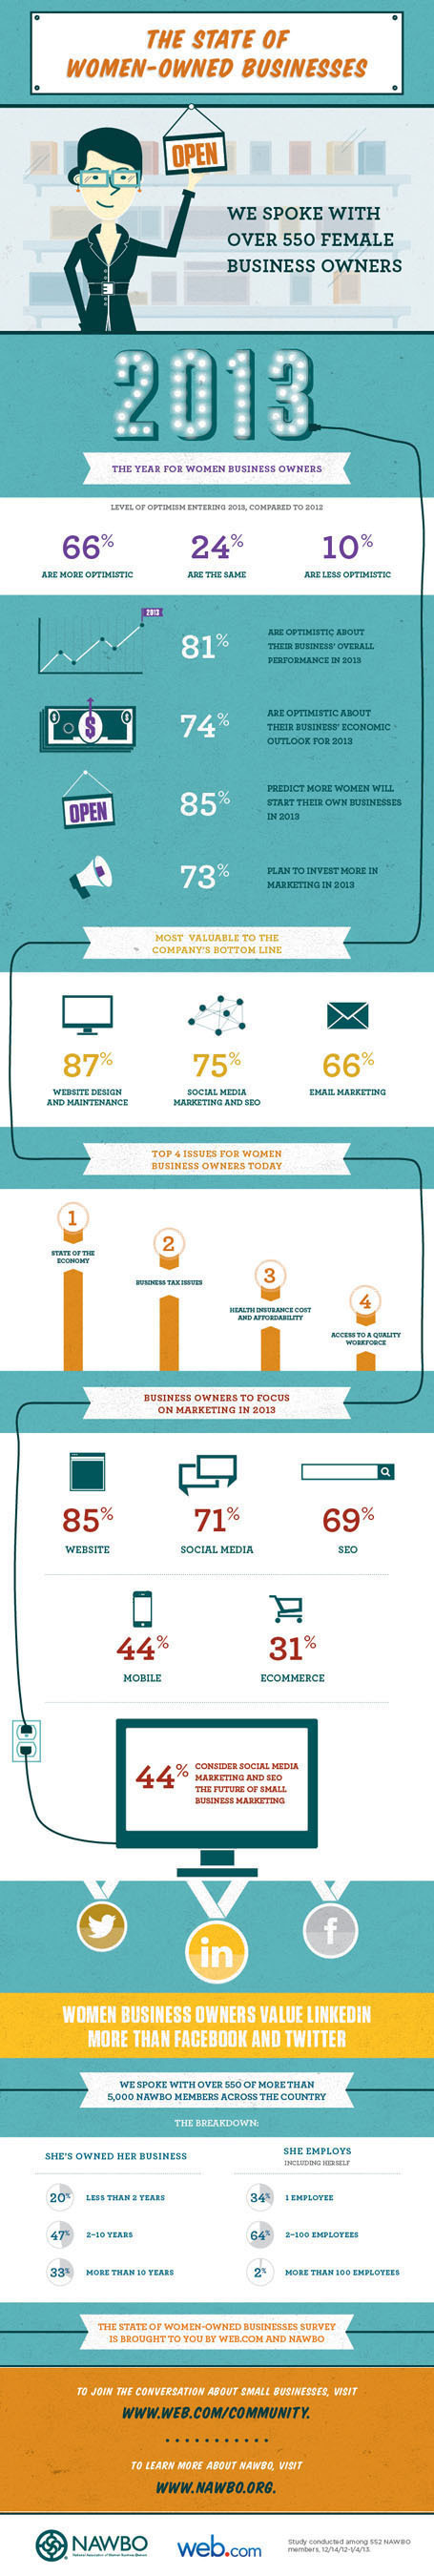 State of Women-Owned Businesses Infographic.  (PRNewsFoto/Web.com, National Association of Women Business Owners)